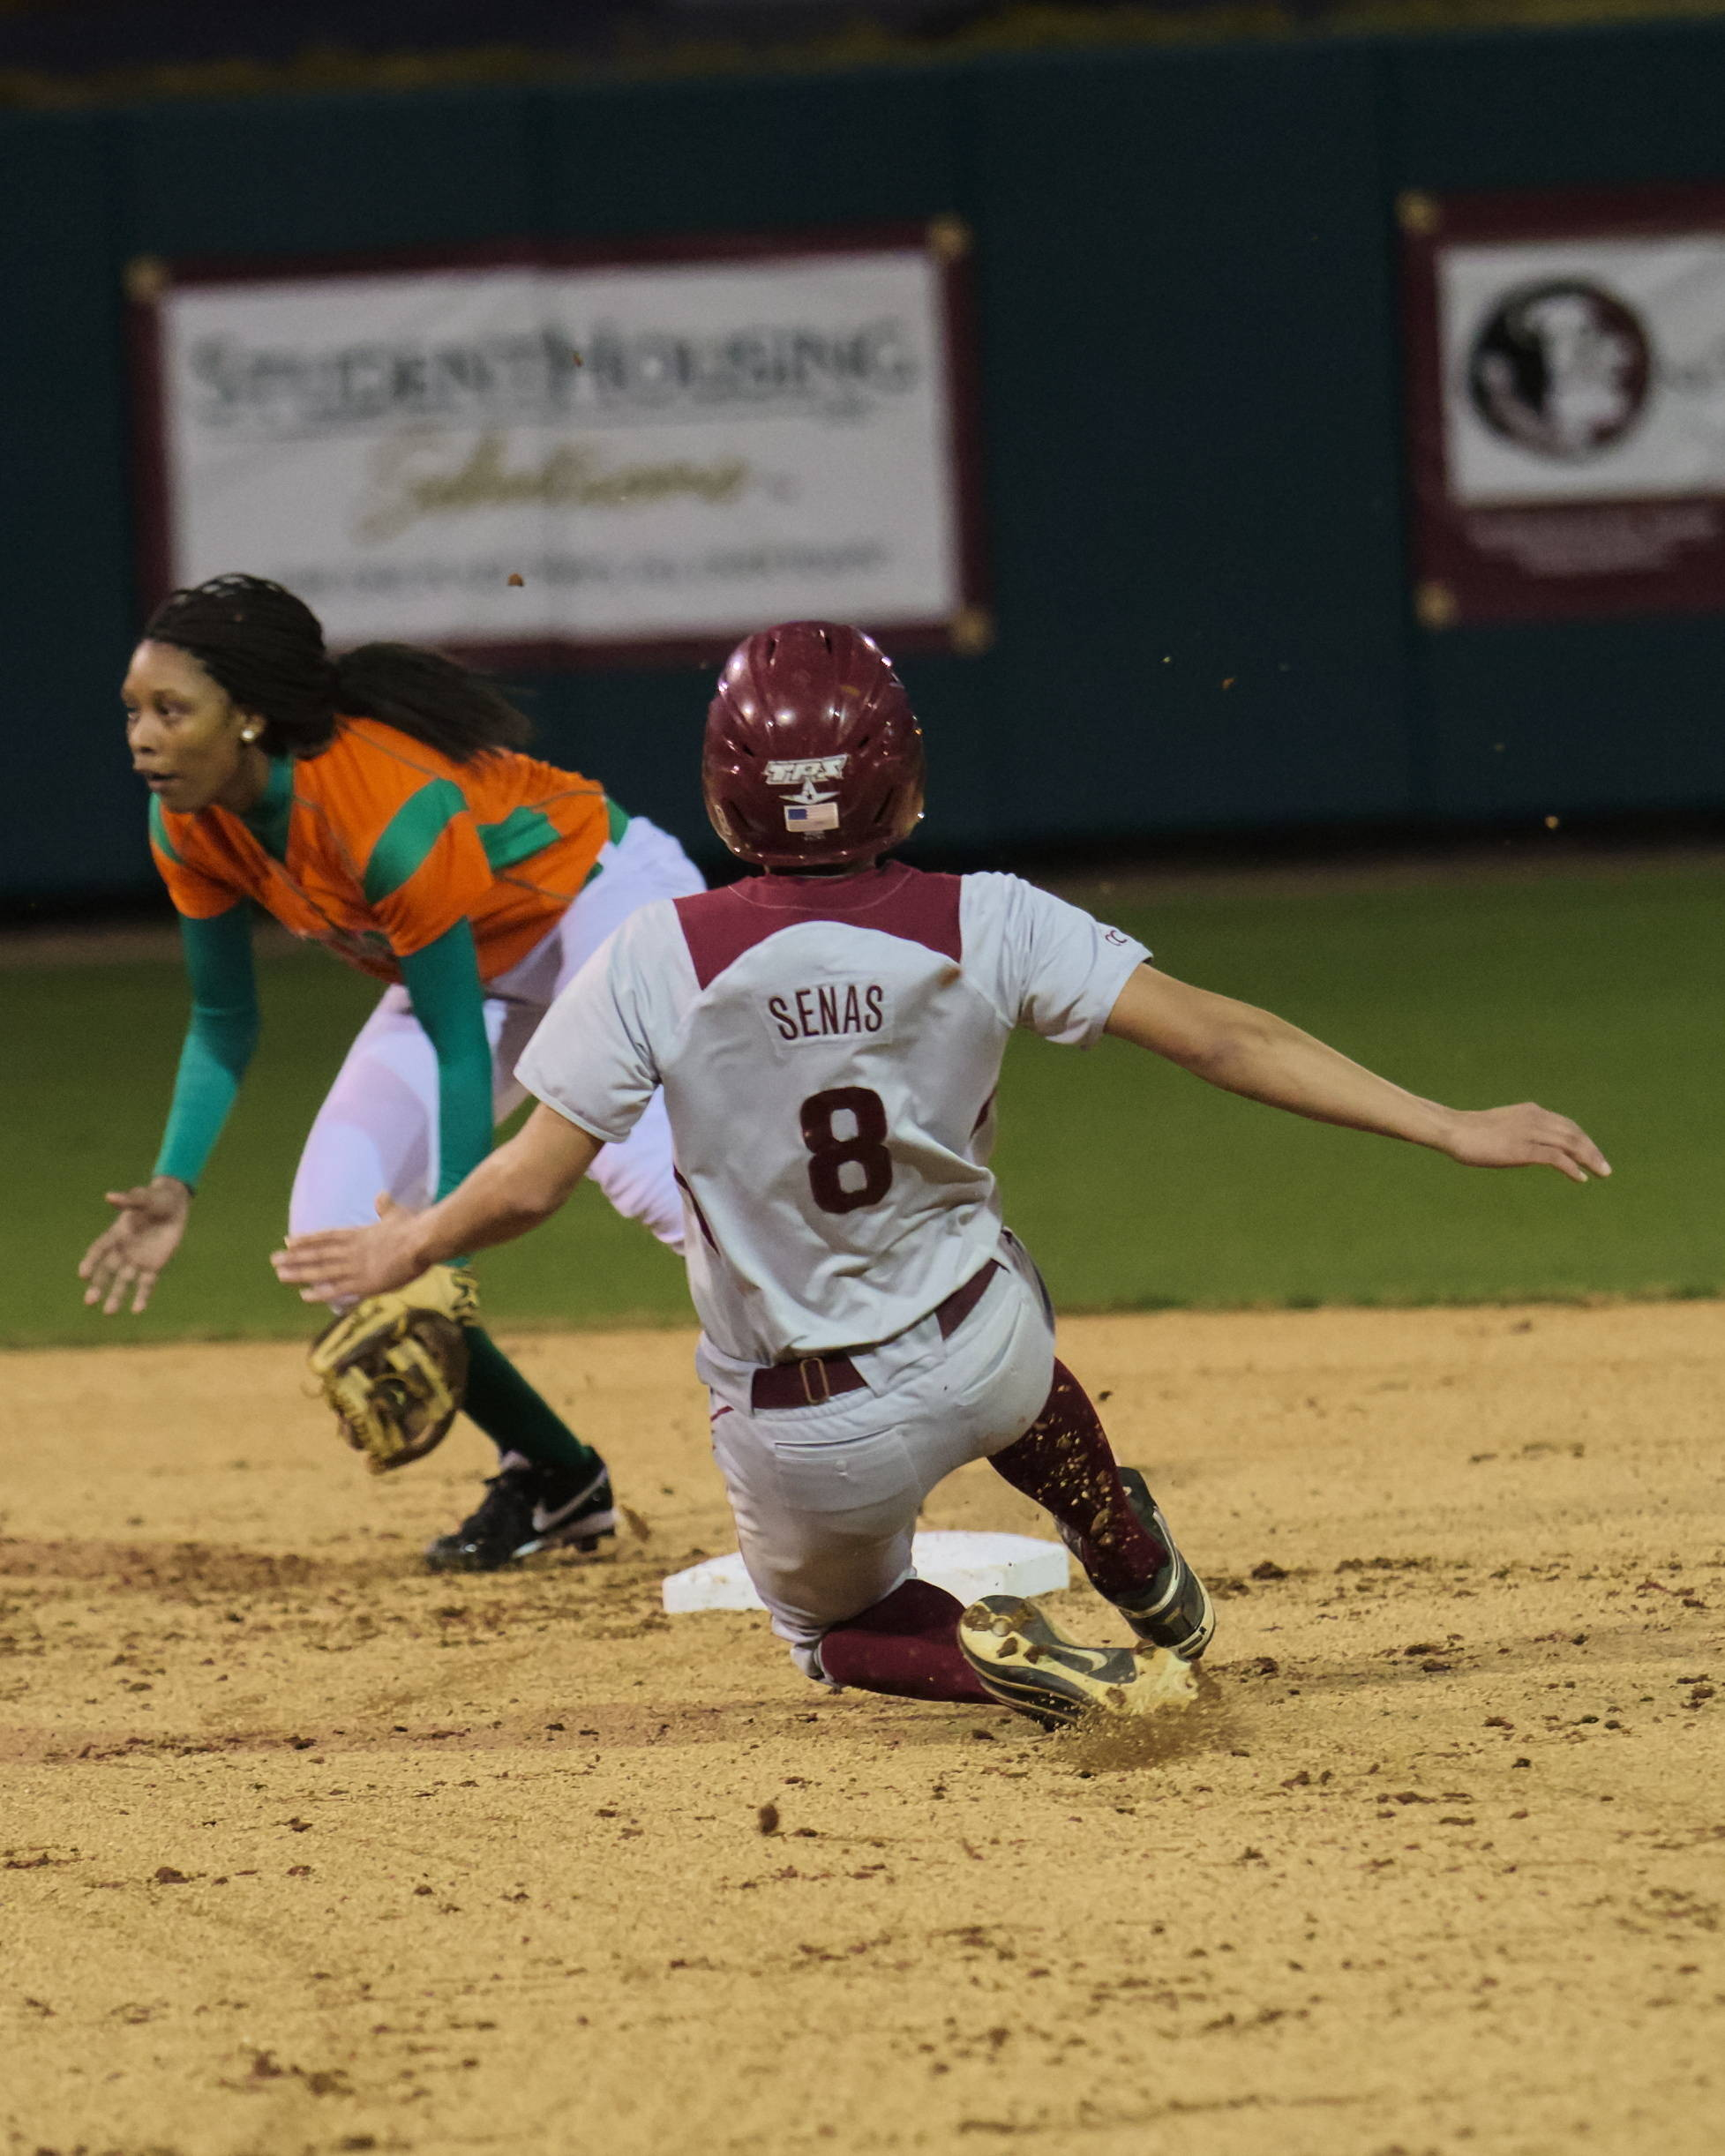 Courtney Senas (8), with a stolen base. FSU vs FAMU, 02/08/13. (Photo by Steve Musco)